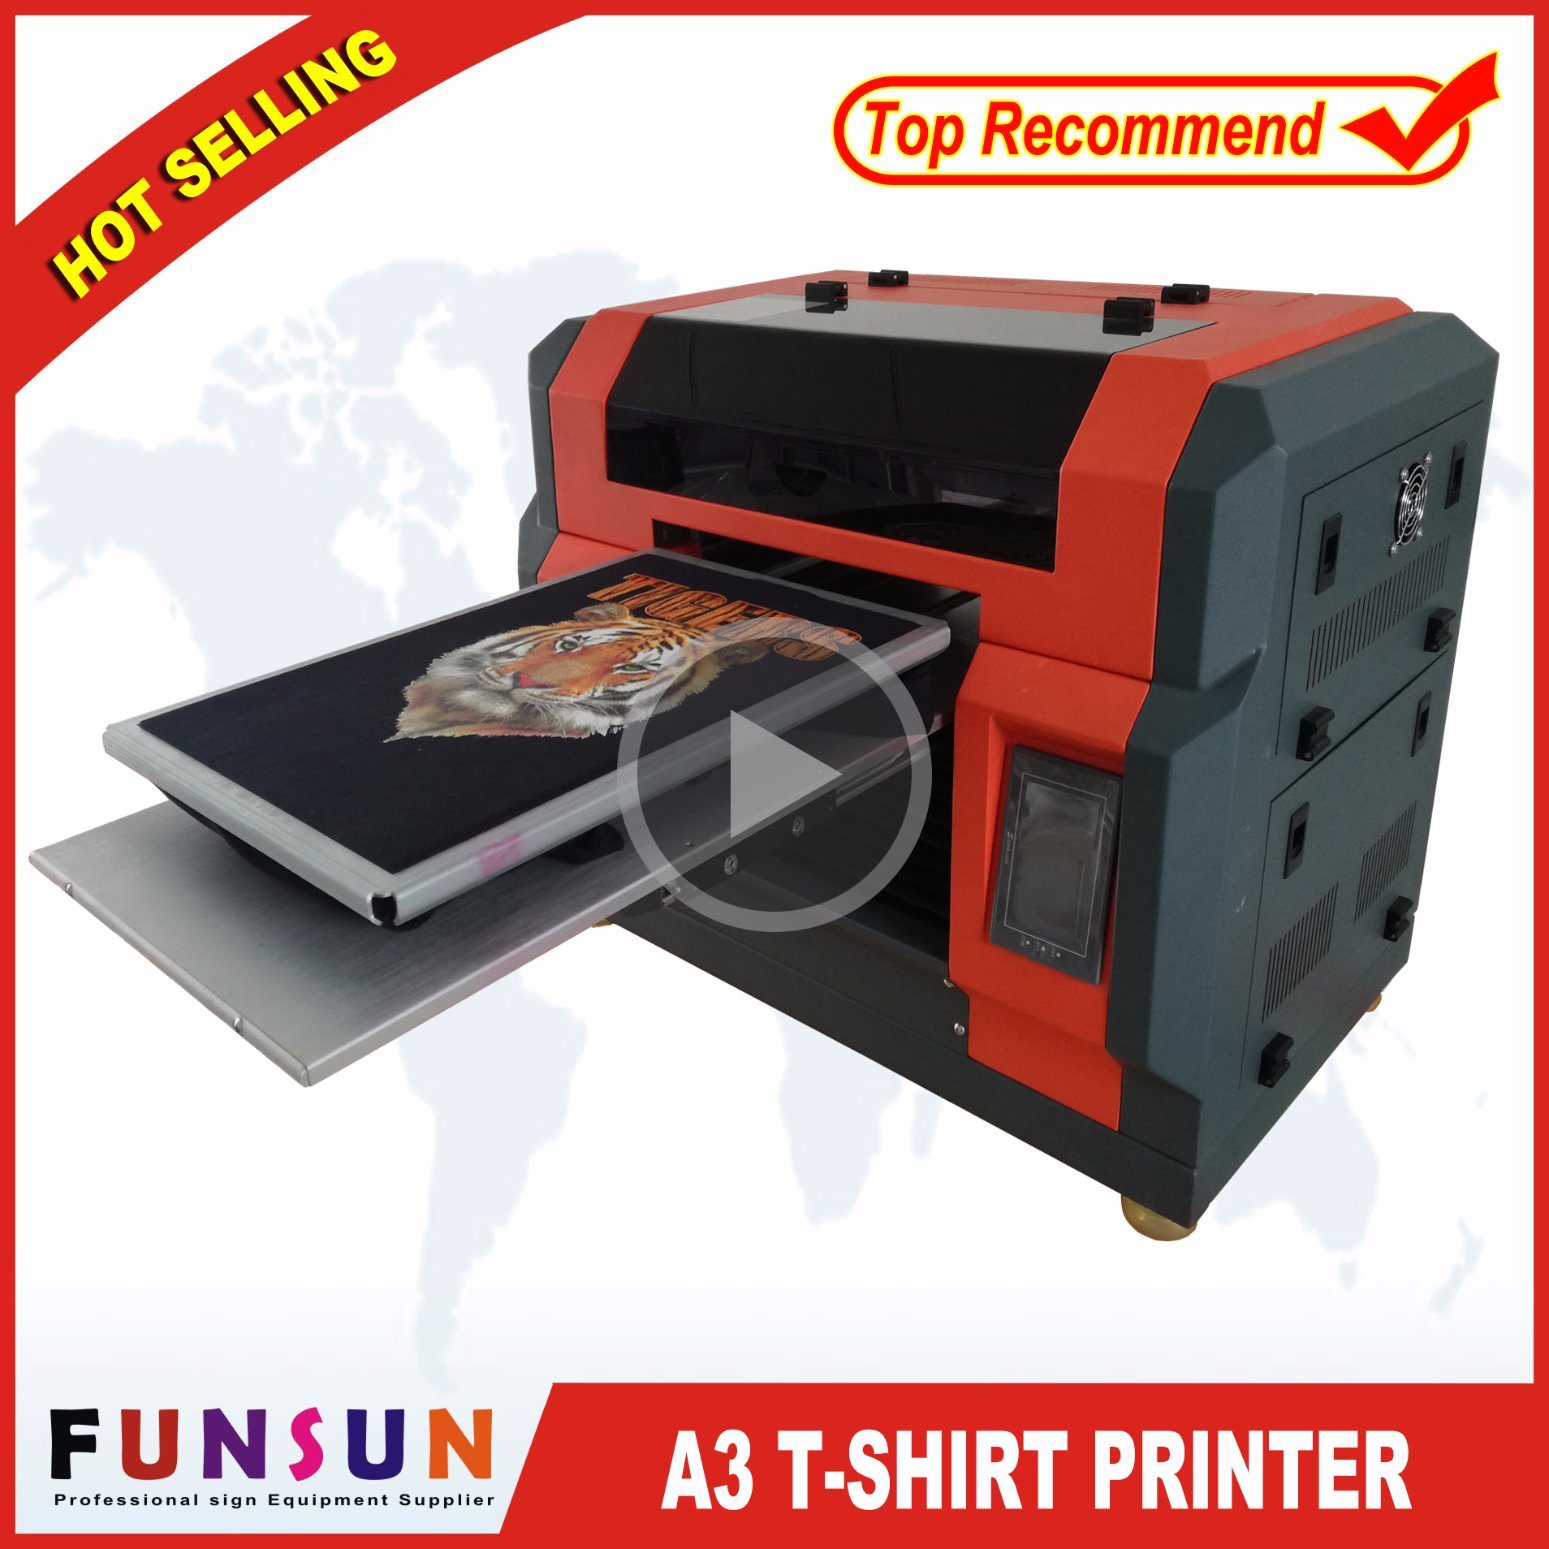 d95b7eafb China Advanced Funsunjet A3 Automatic T-Shirt Printing Machine - China T-Shirt  Printer, DTG Printer